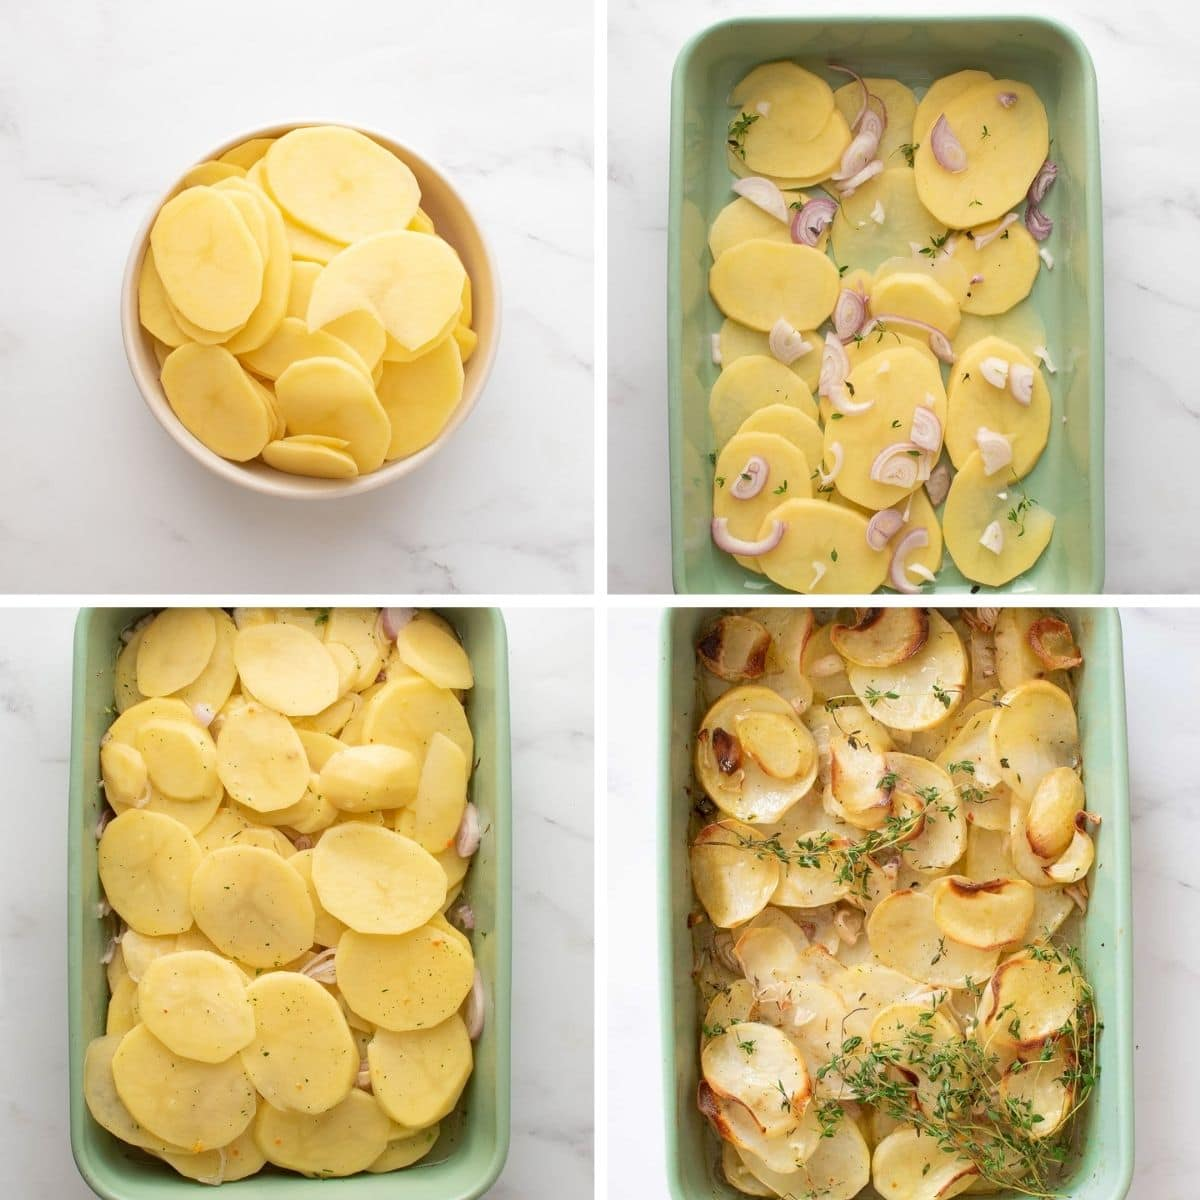 Step by step images showing how to make boulangere potatoes.